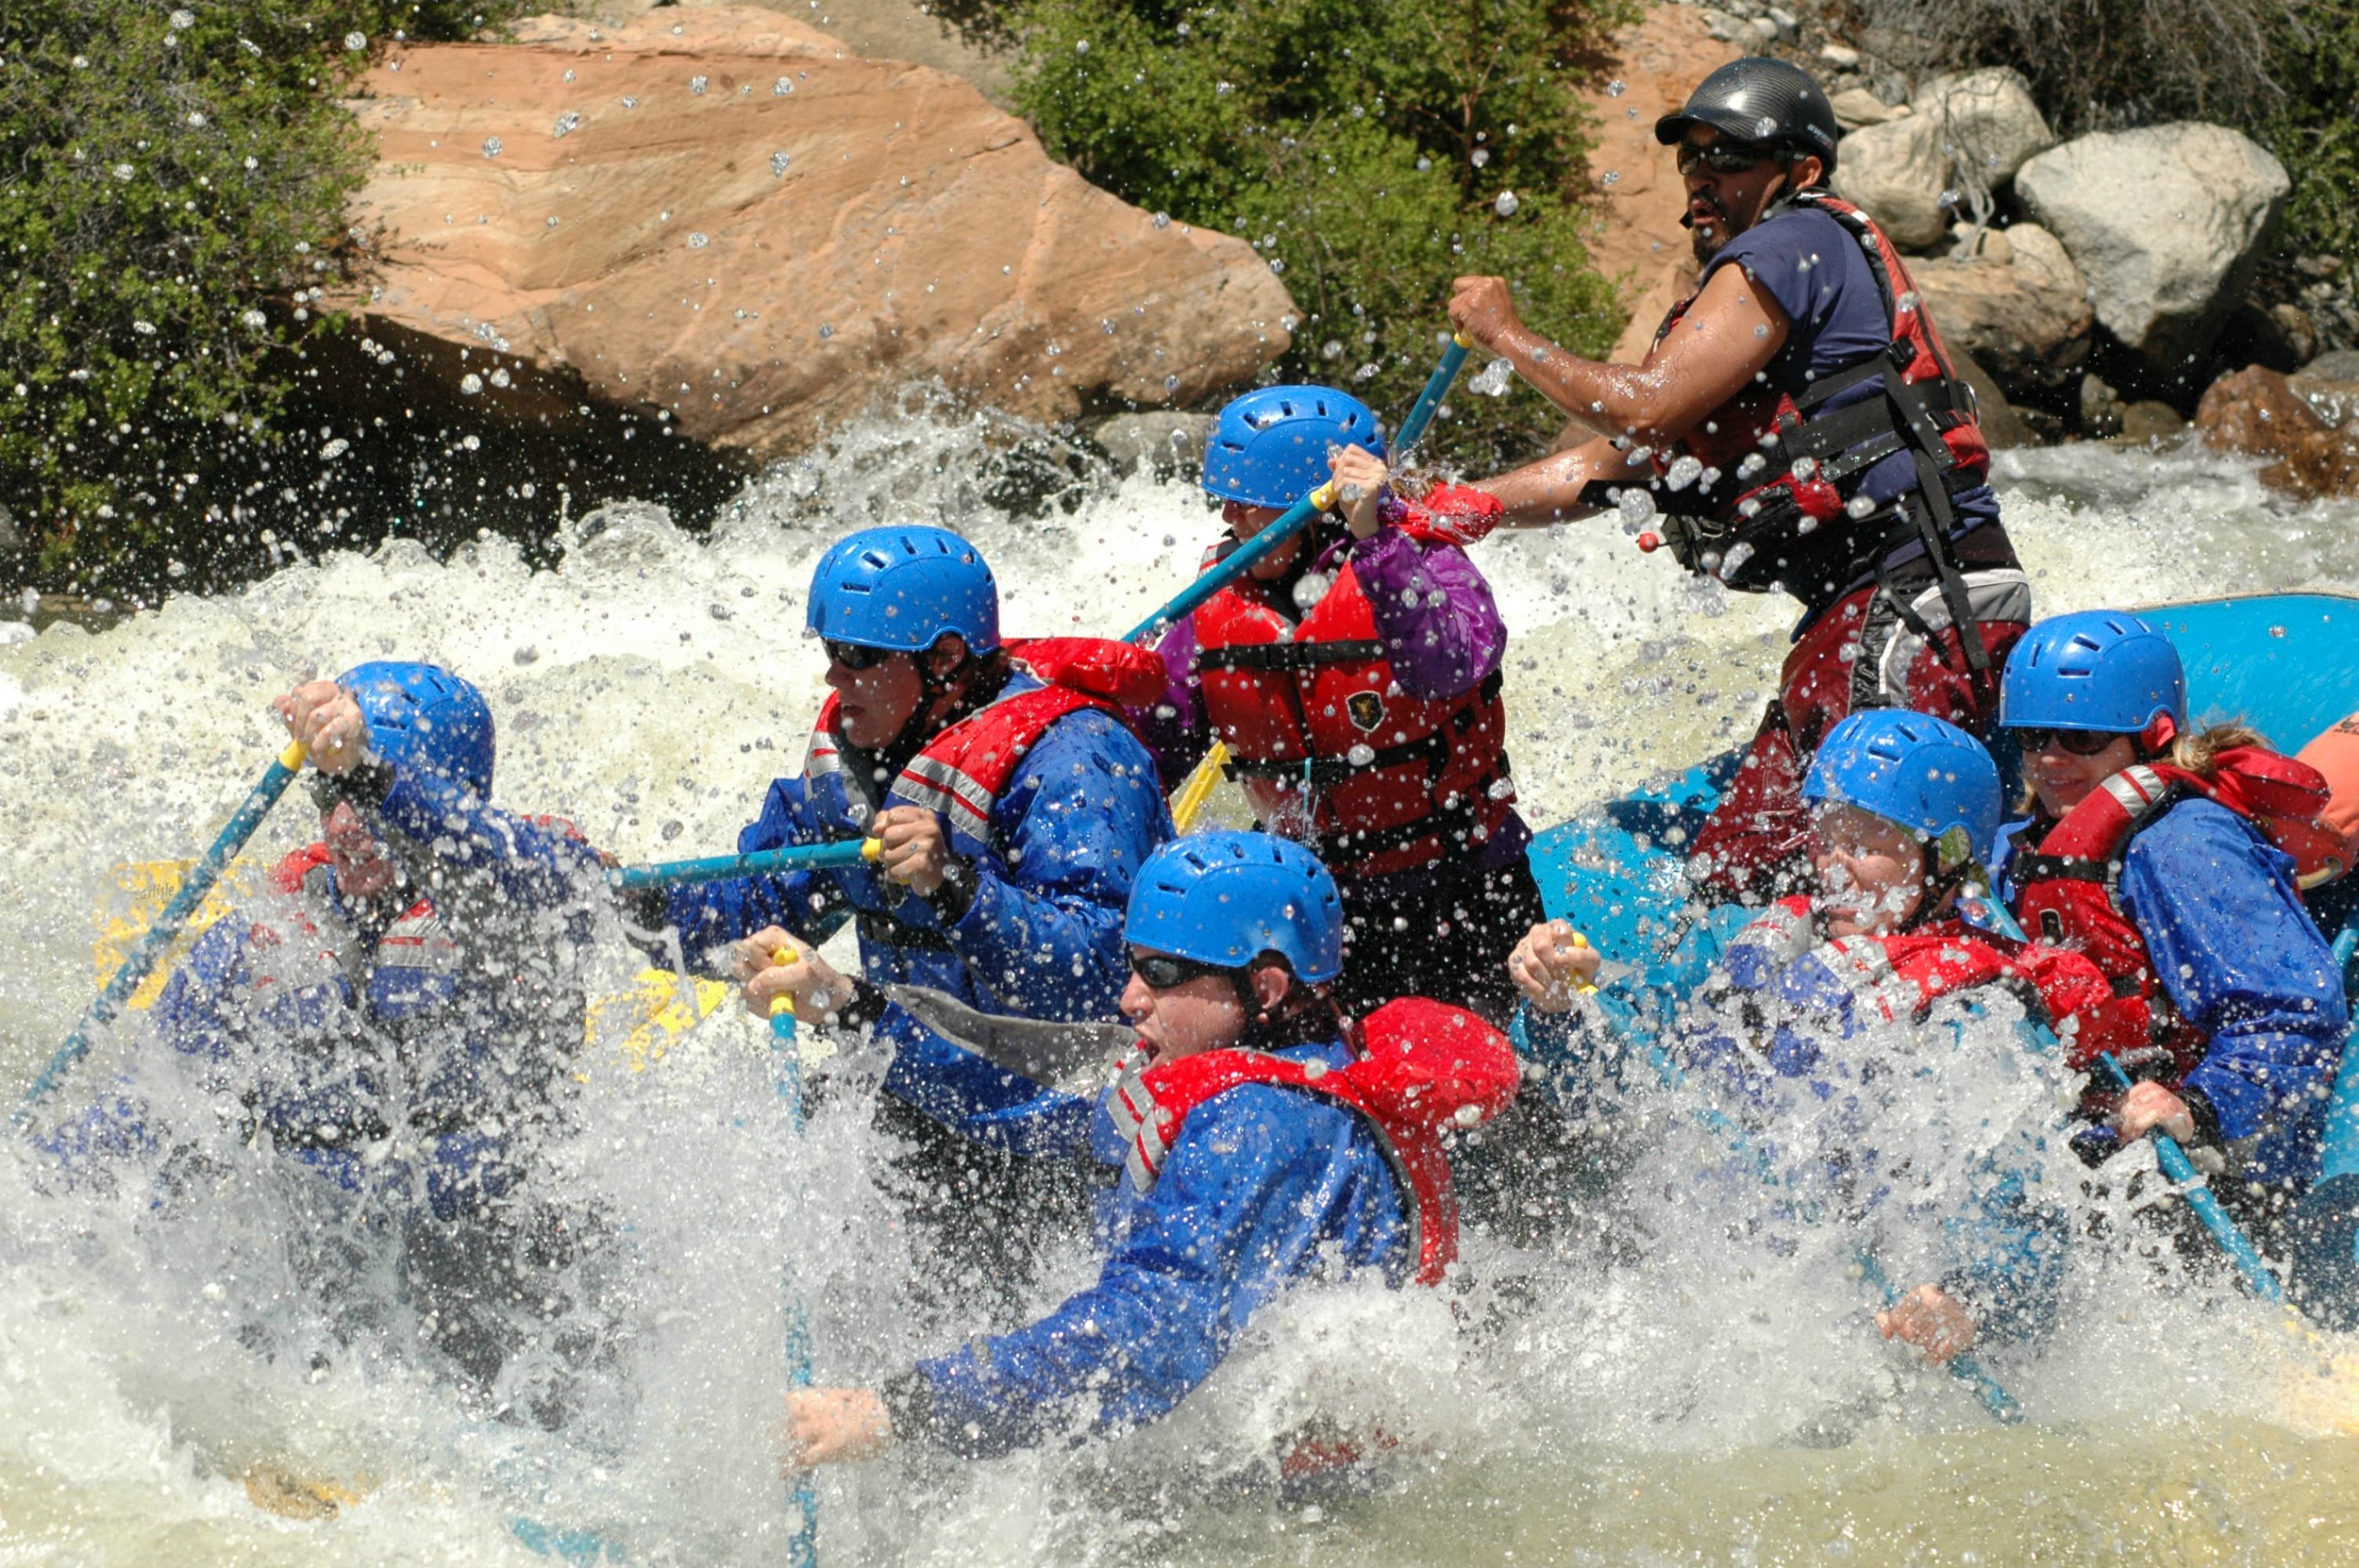 Whitewater Rafting, the real adventure